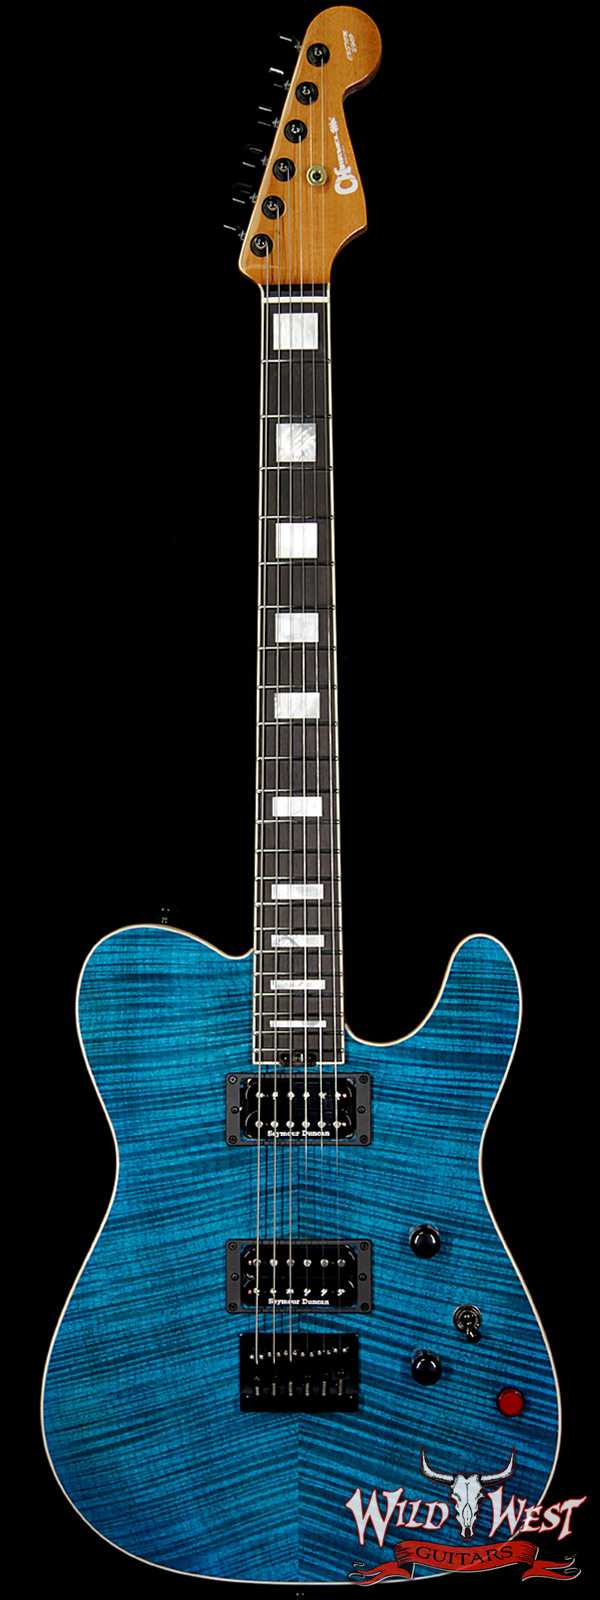 Charvel Custom Shop Wild West 010 Masterbuilt Red Dave Style 2 HH Flame Top Kill Switch Trans Aqua